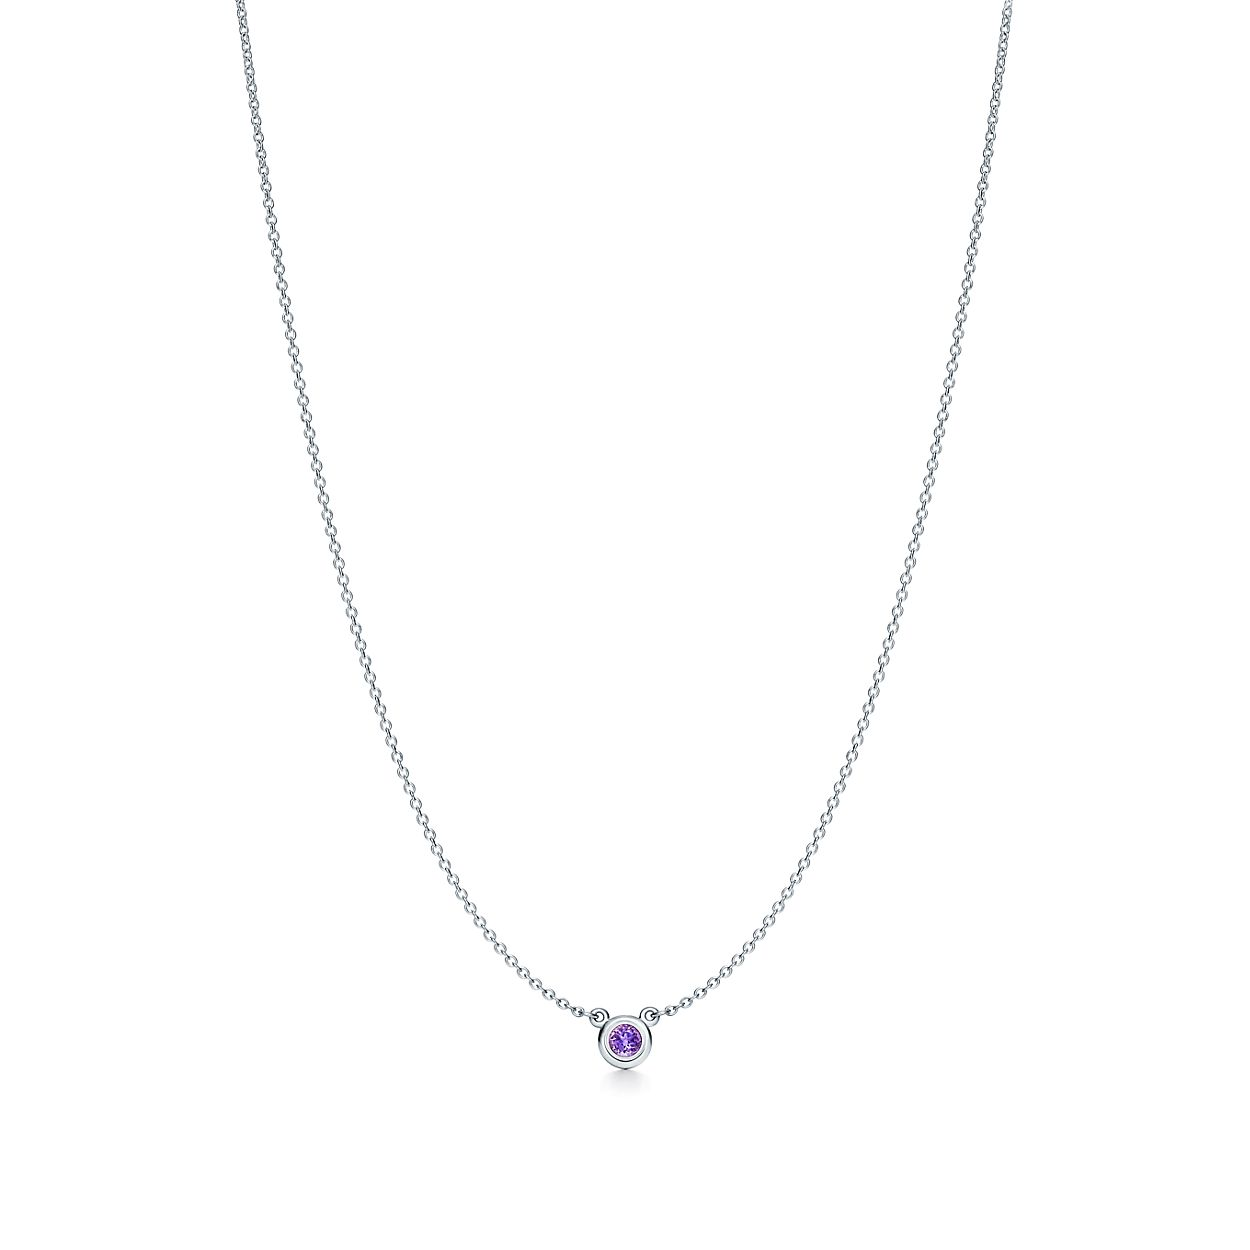 Elsa Peretti Color by the Yard pendant in sterling silver with an amethyst Tiffany & Co. 55HUON